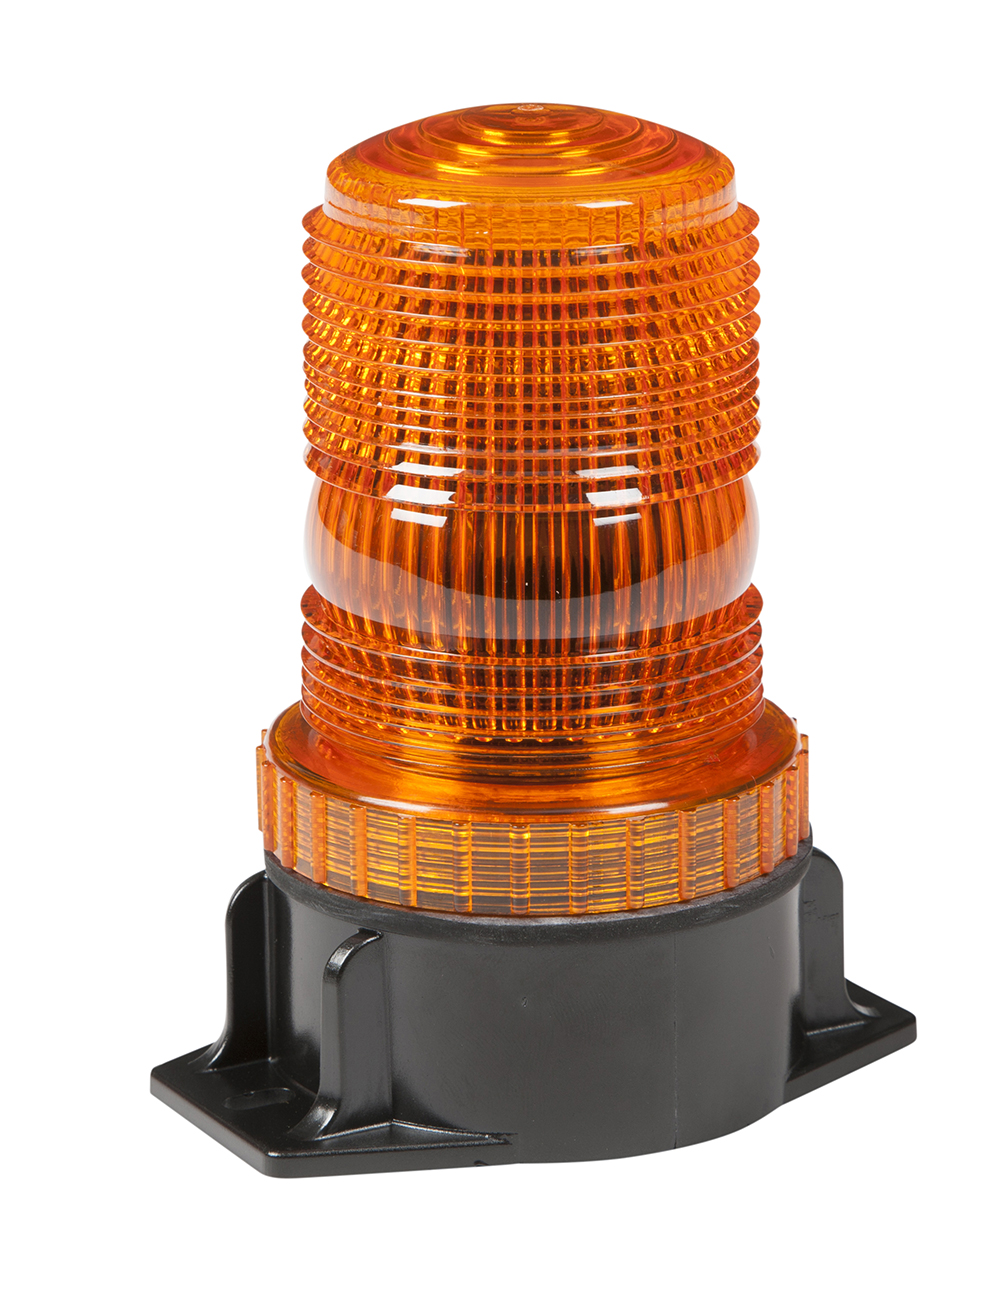 Grote Industries - 78113 – LED Material Handling Beacon, Class III, Permanent Mount, Tall Lens, Amber